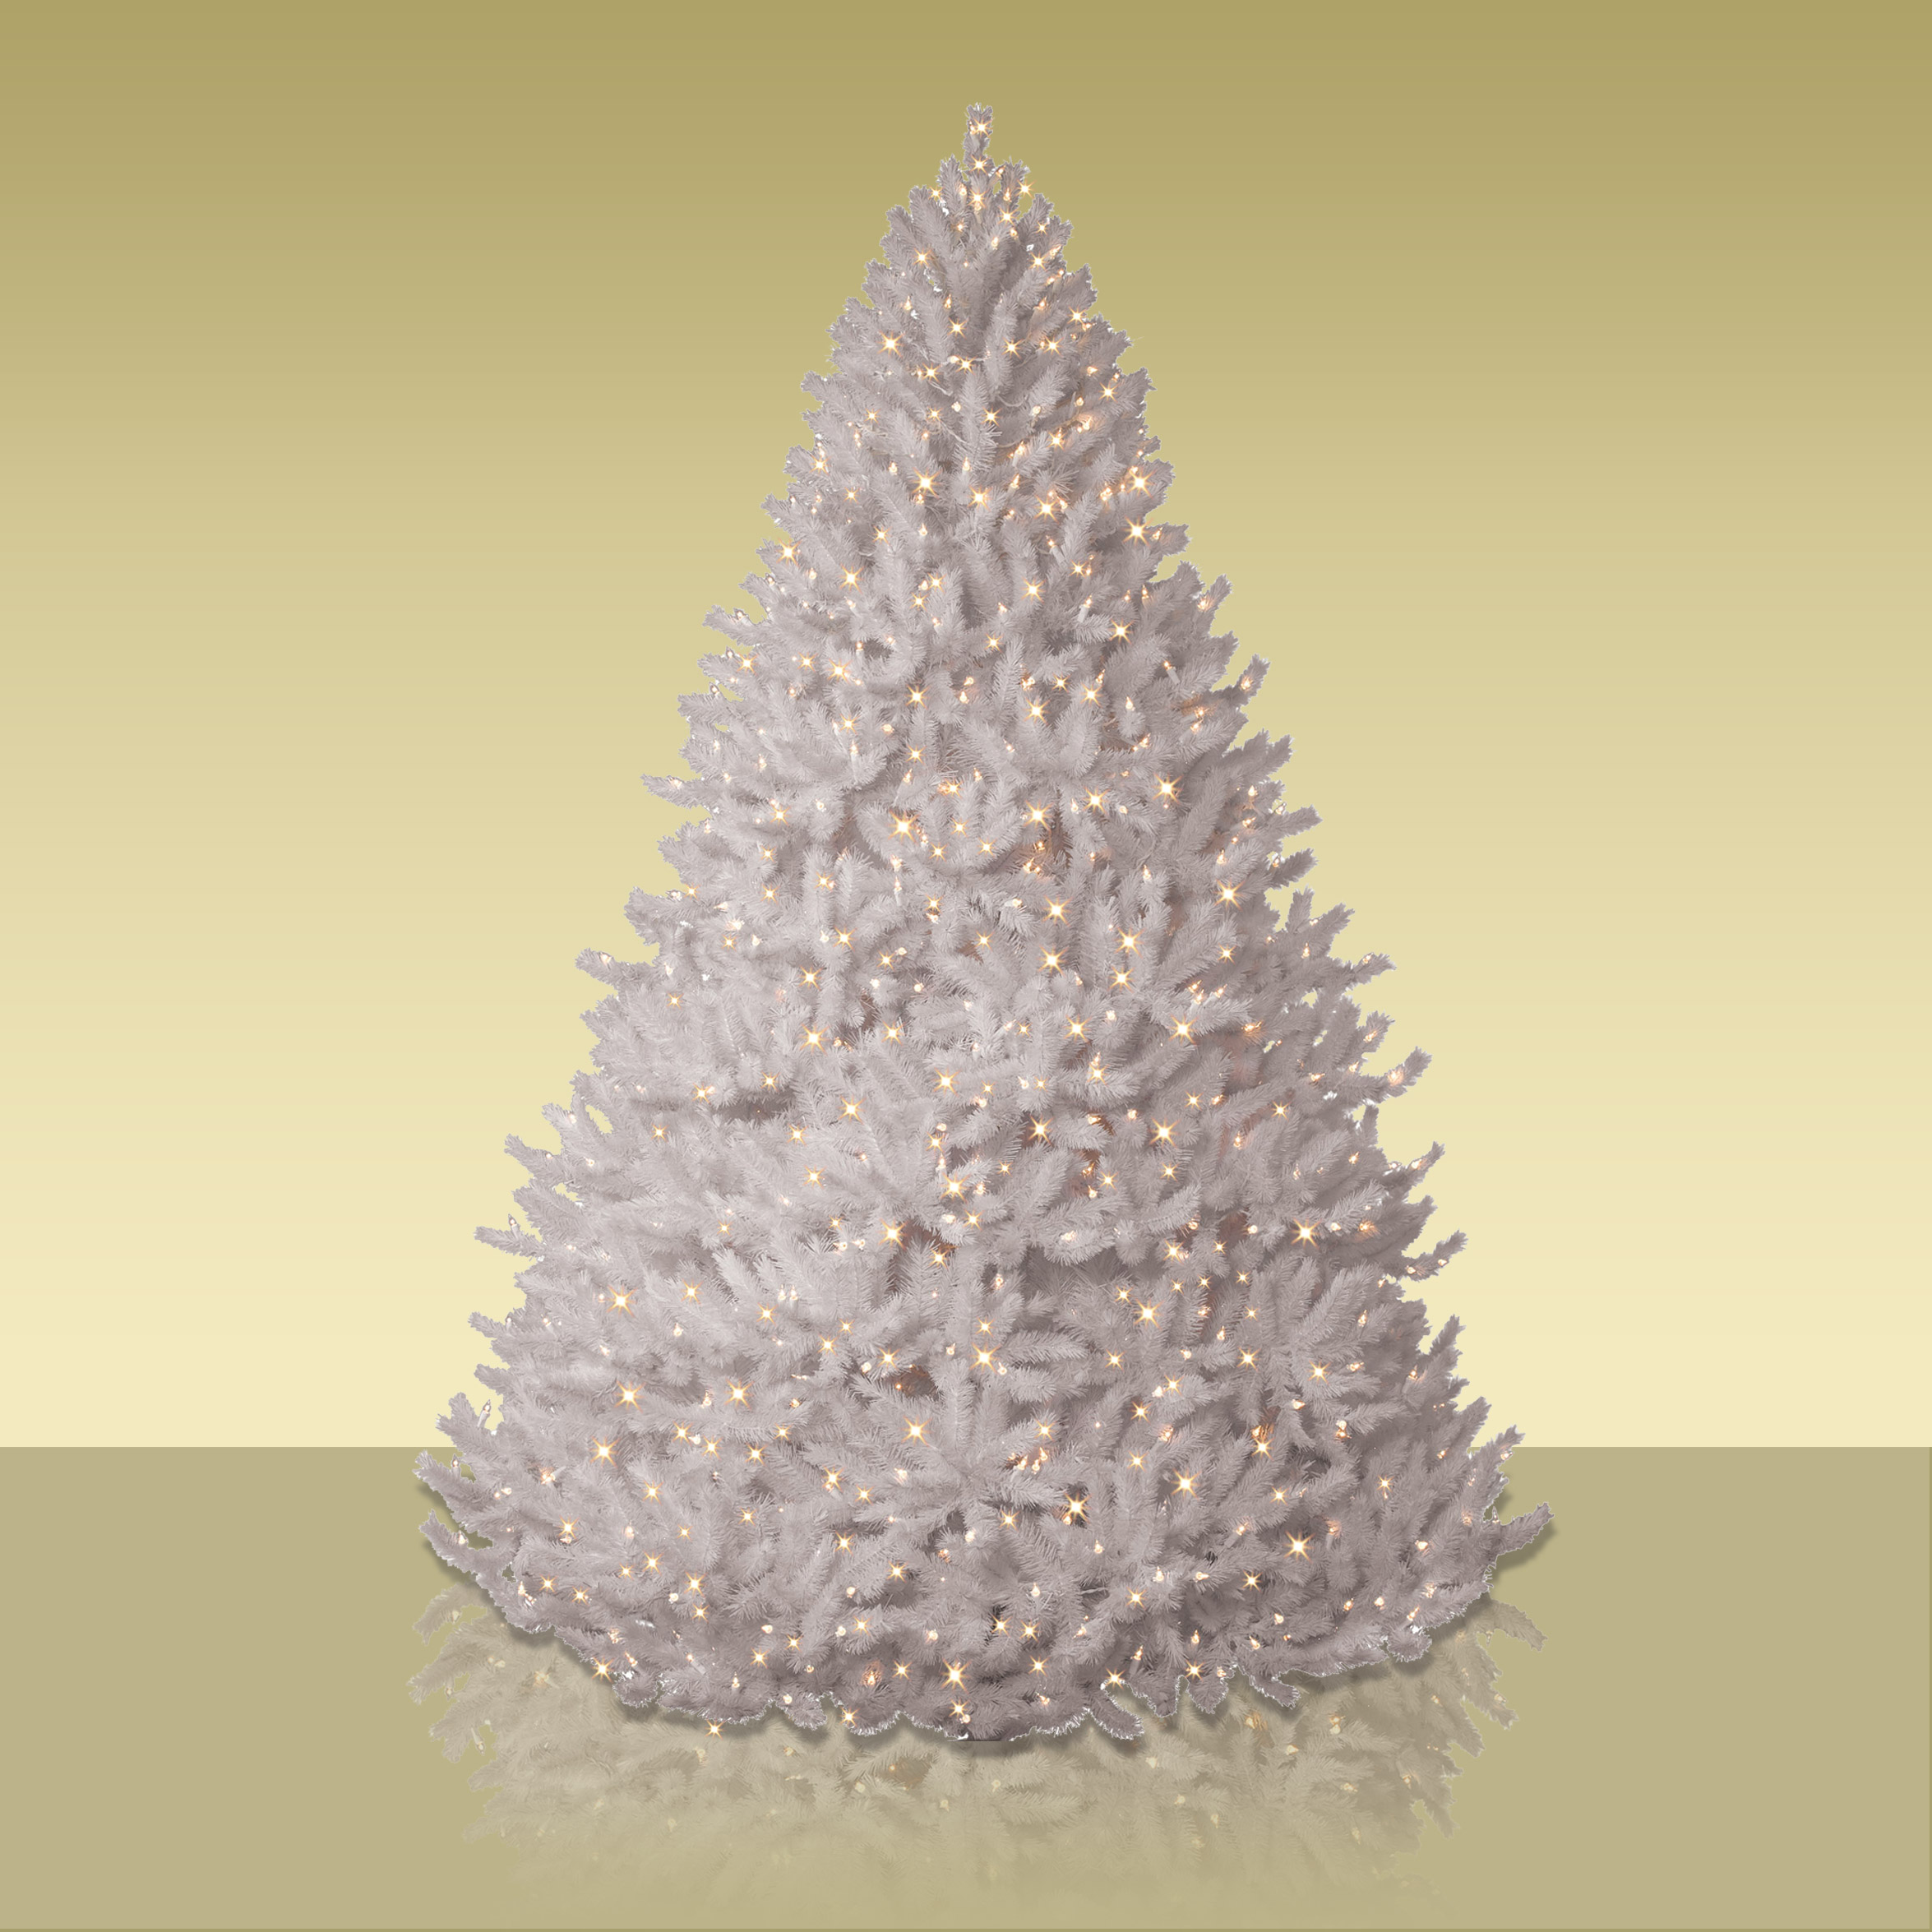 pikes peak white christmas treethe pikes peak white christmas tree has realistic pine needle foliage